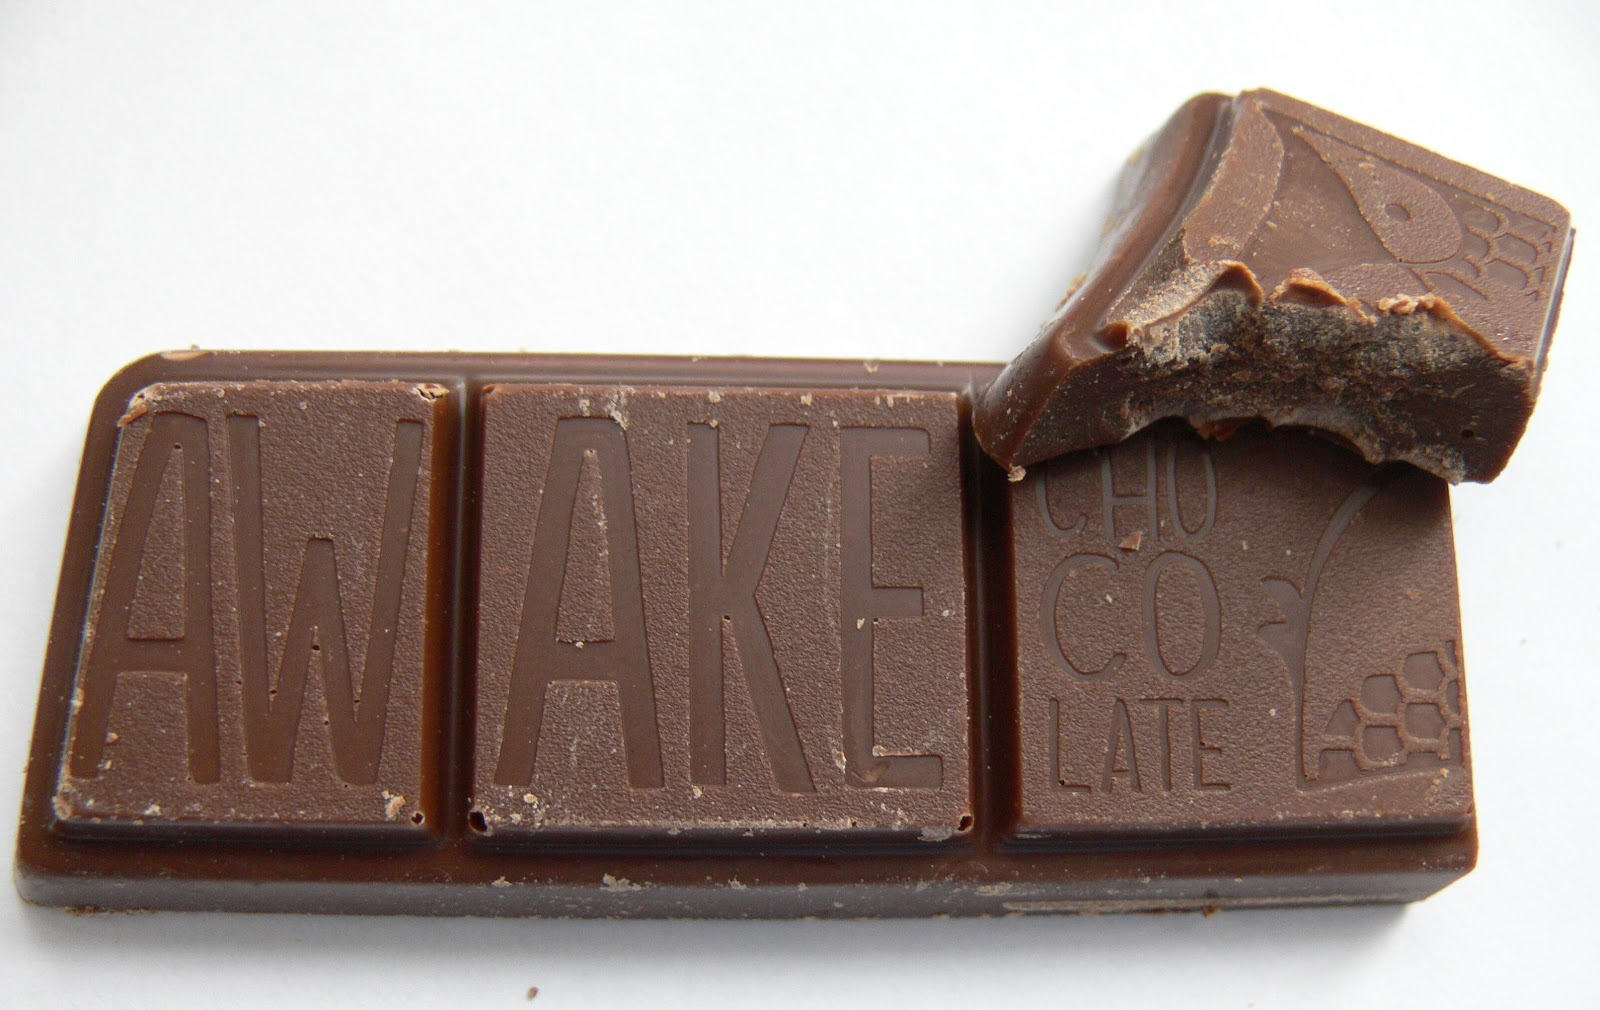 The Ultimate Chocolate Blog: Are you awake?